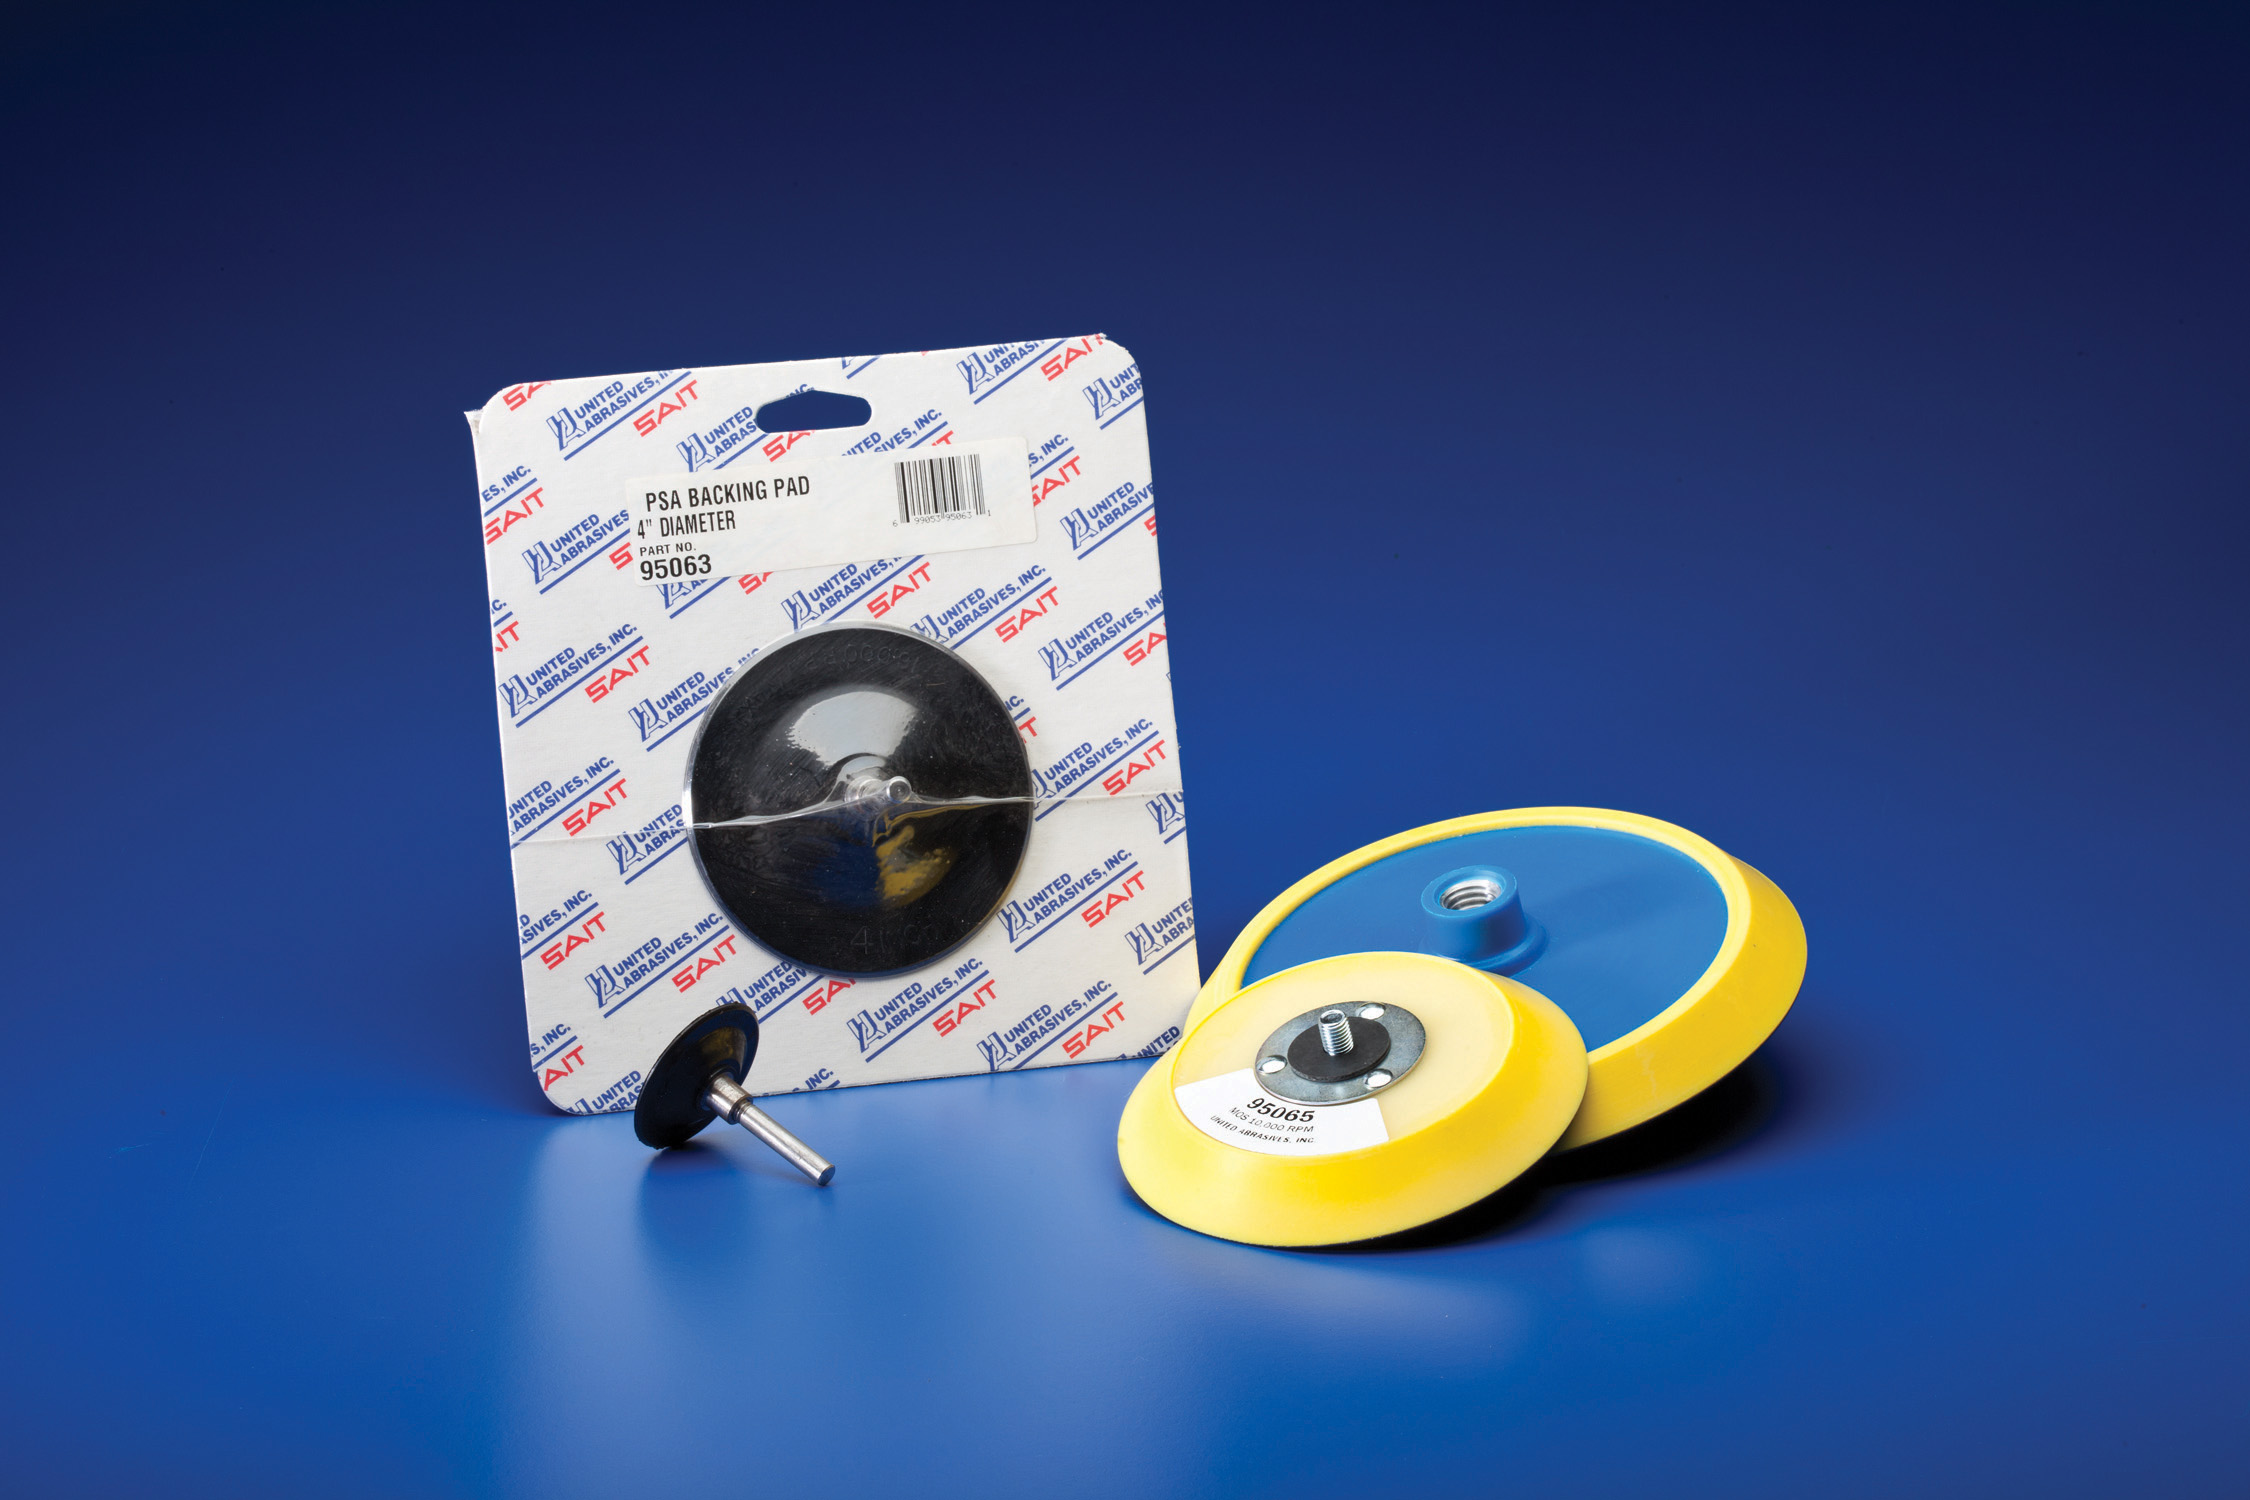 Pressure Sensitive Adhesive (PSA) Backing Pads